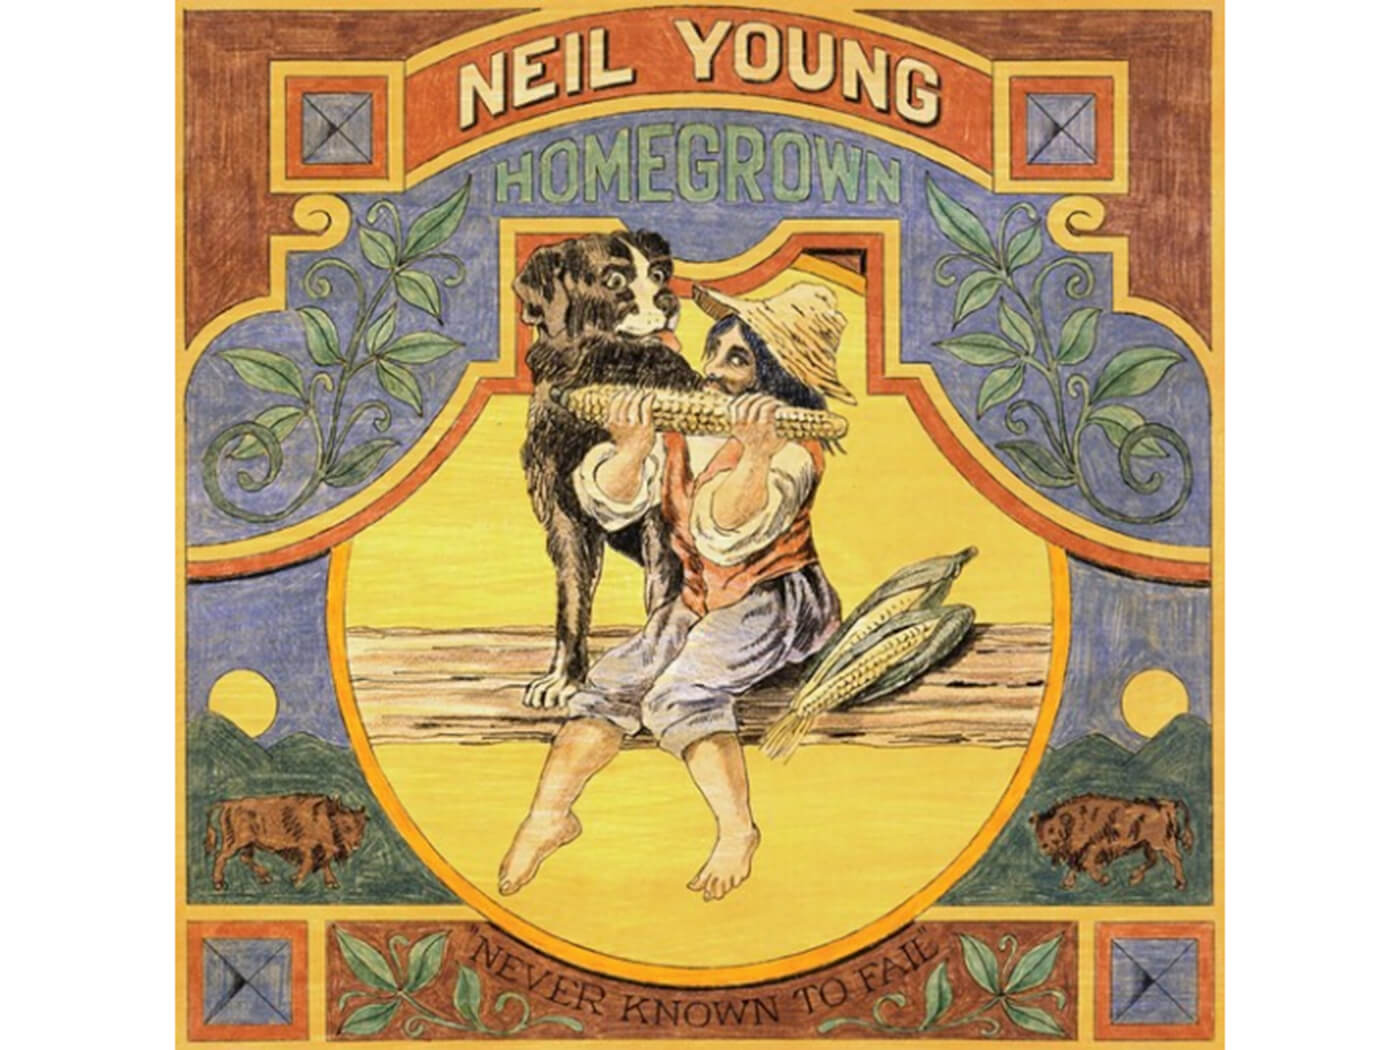 Neil Young's Homegrown is coming for Record Store Day